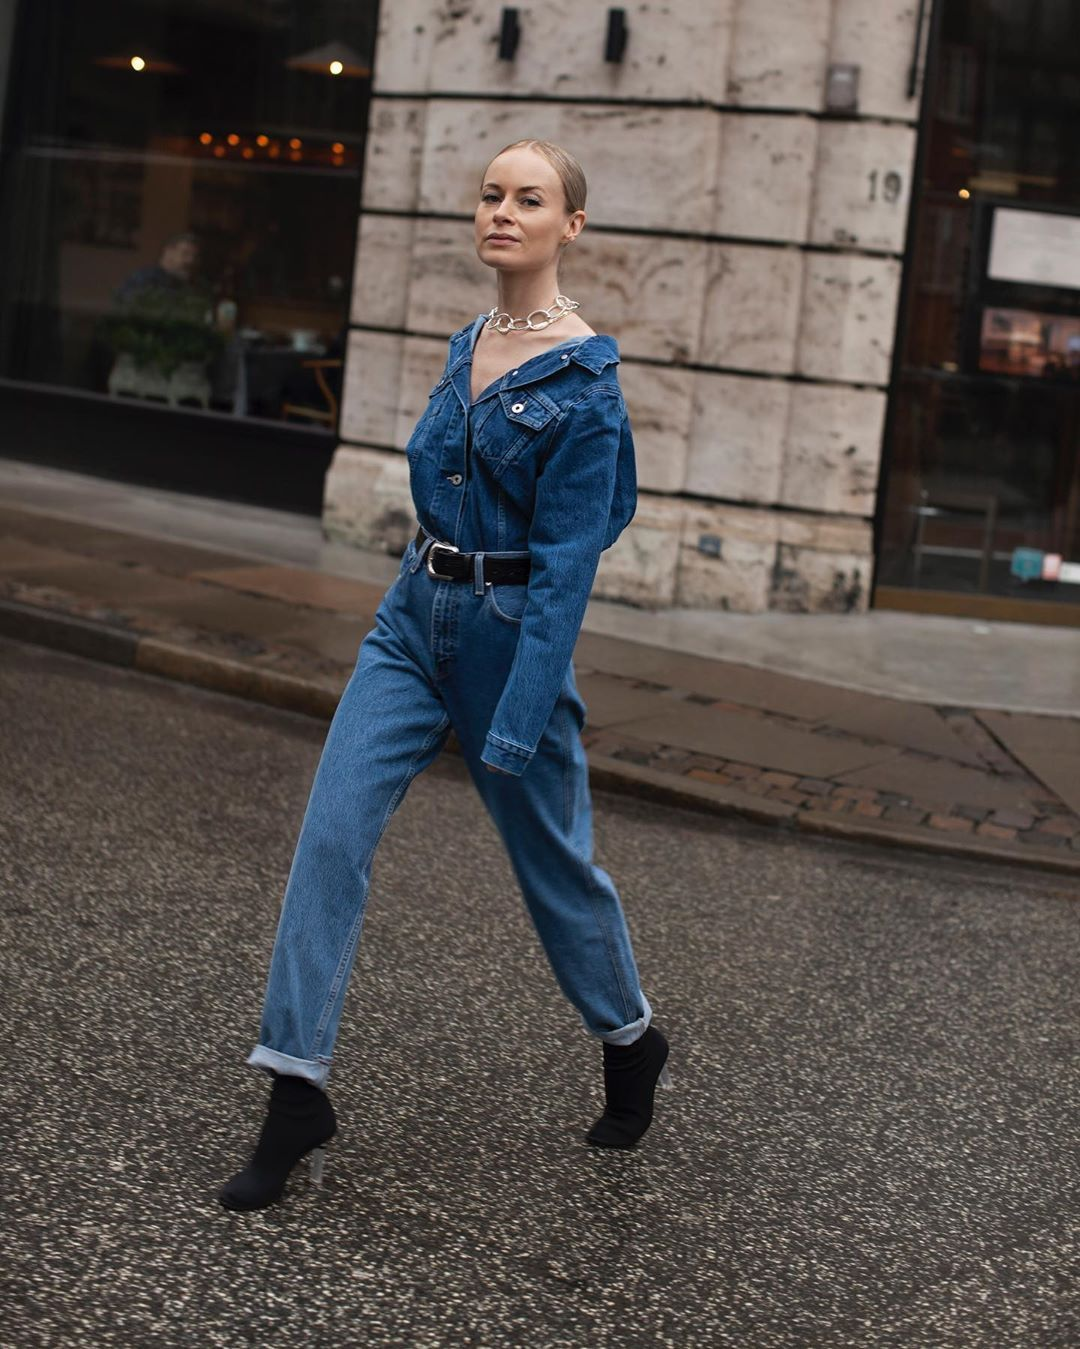 thora-valdimars-denim-on-denim-copenhagen-fashion-week-fall-2020-street-style